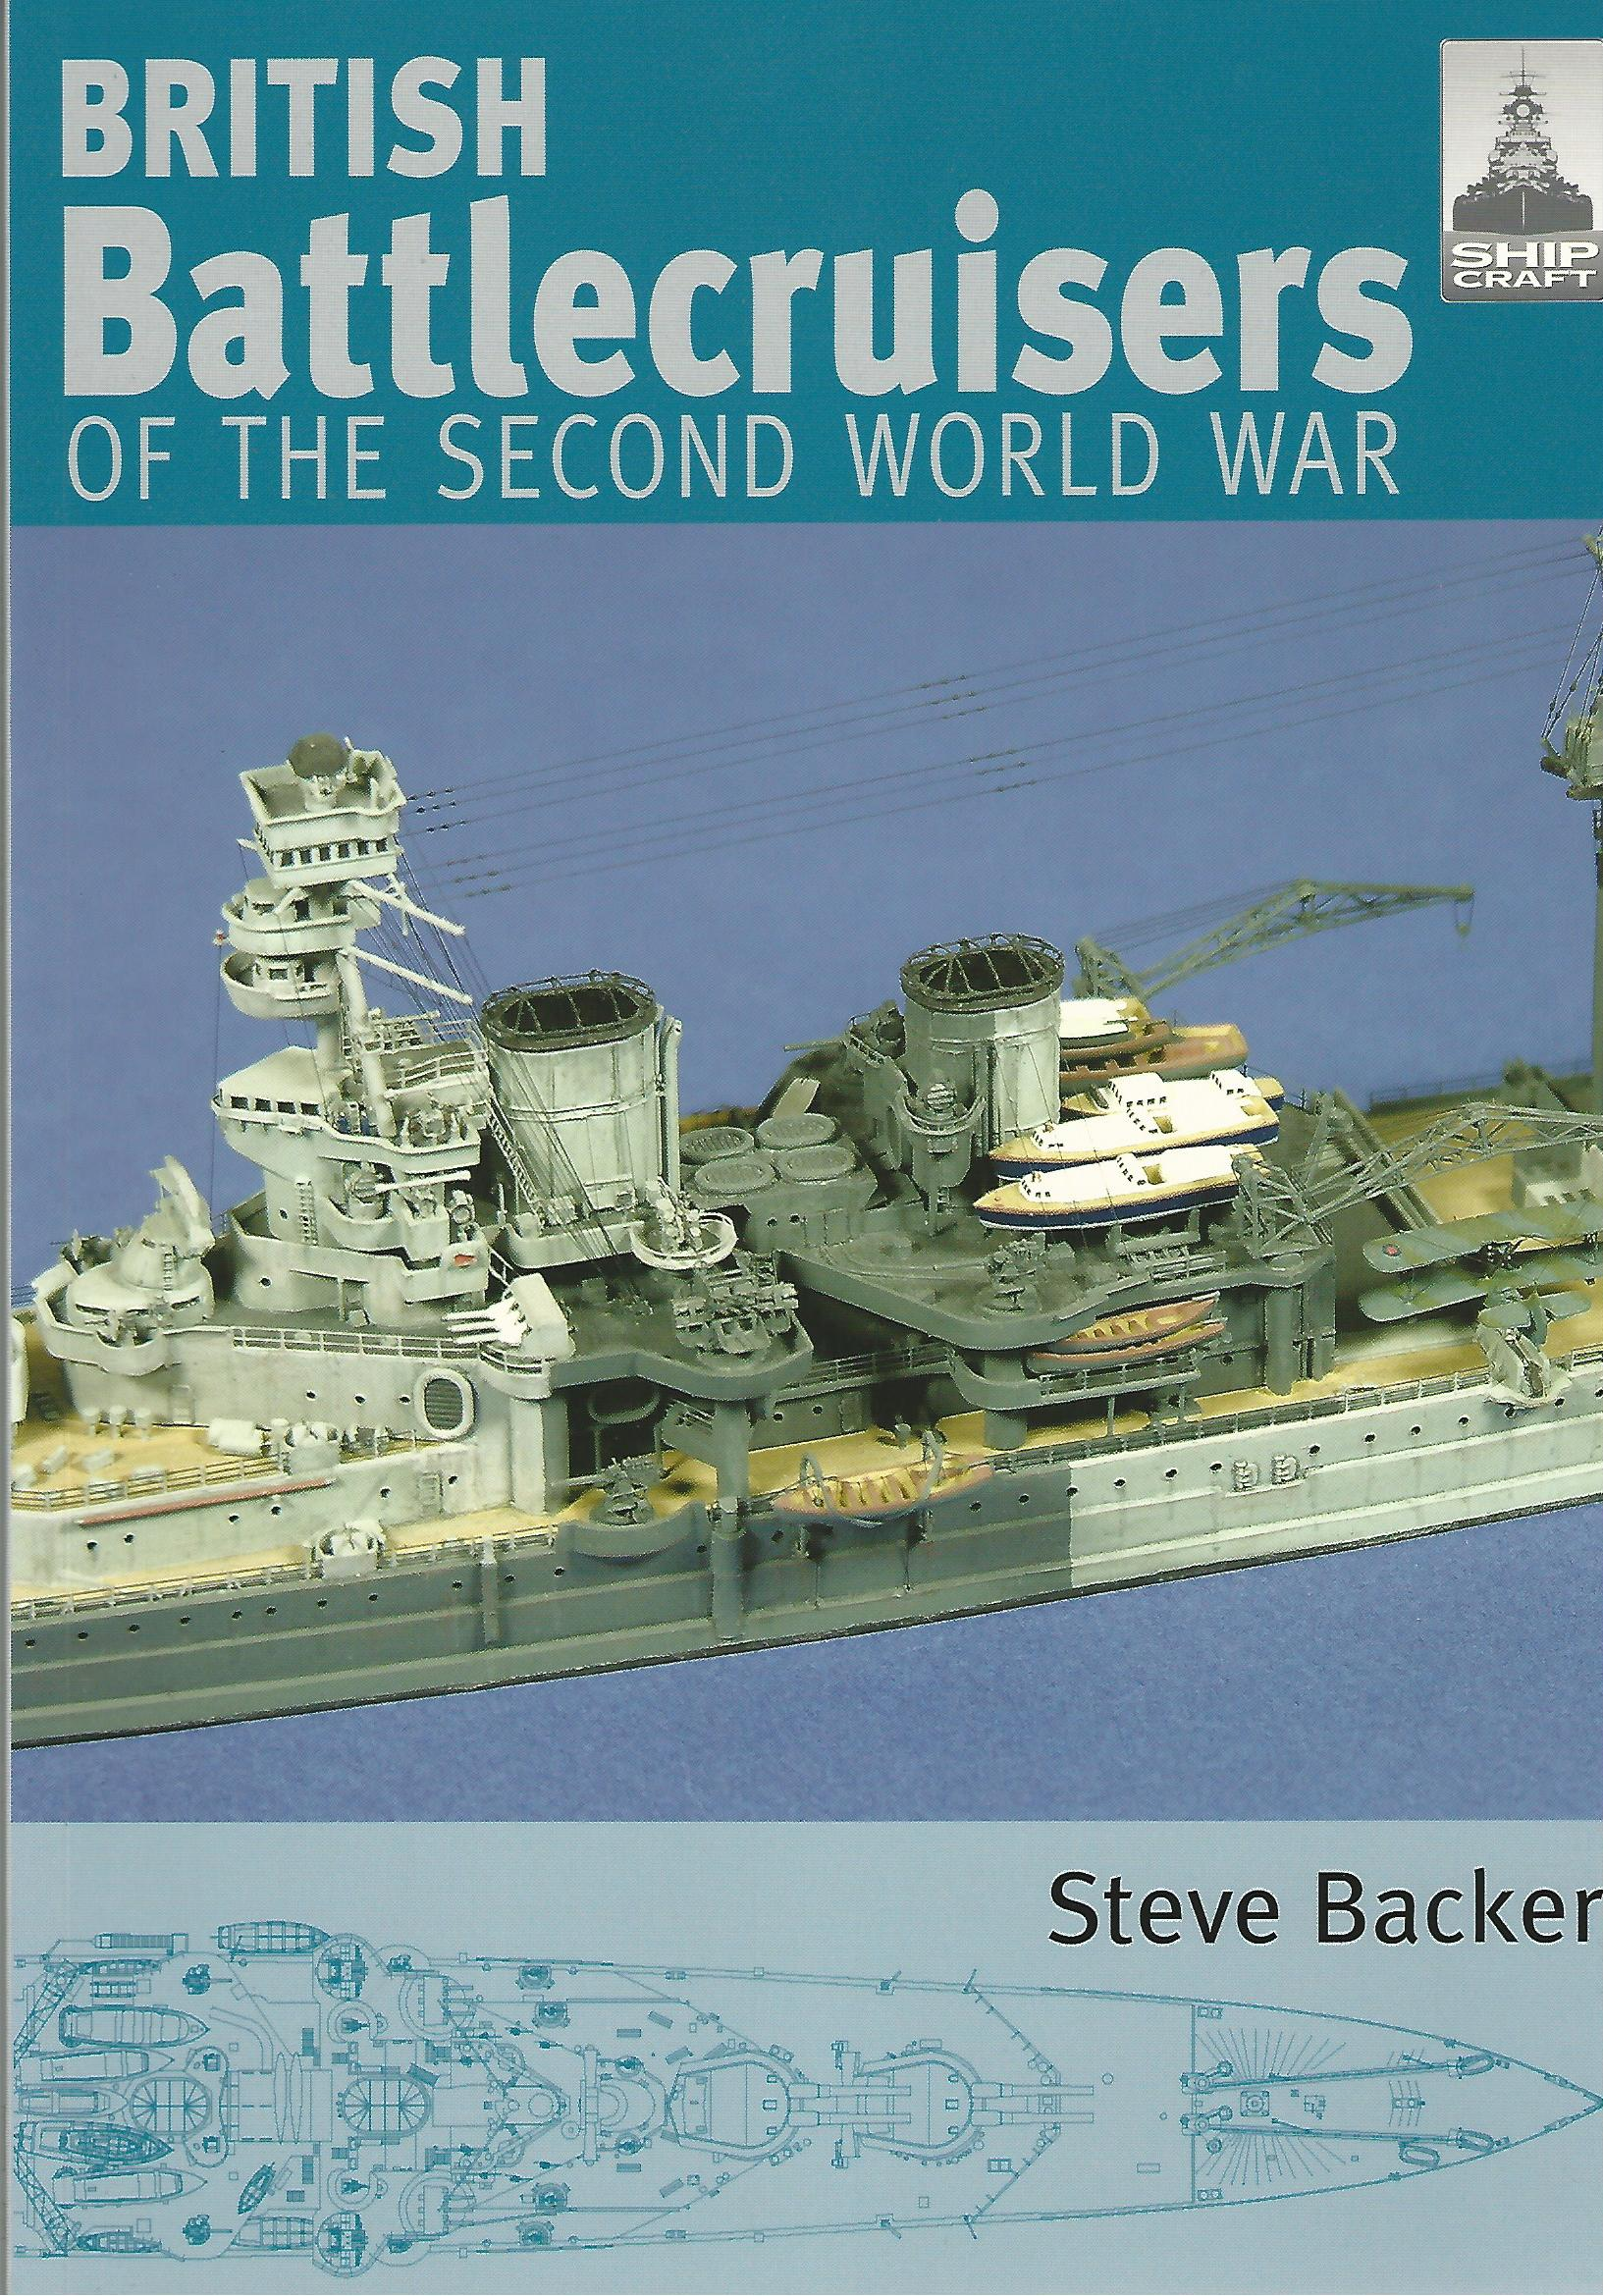 Image for Shipcraft 7 - British Battlecruisers of the Second World War